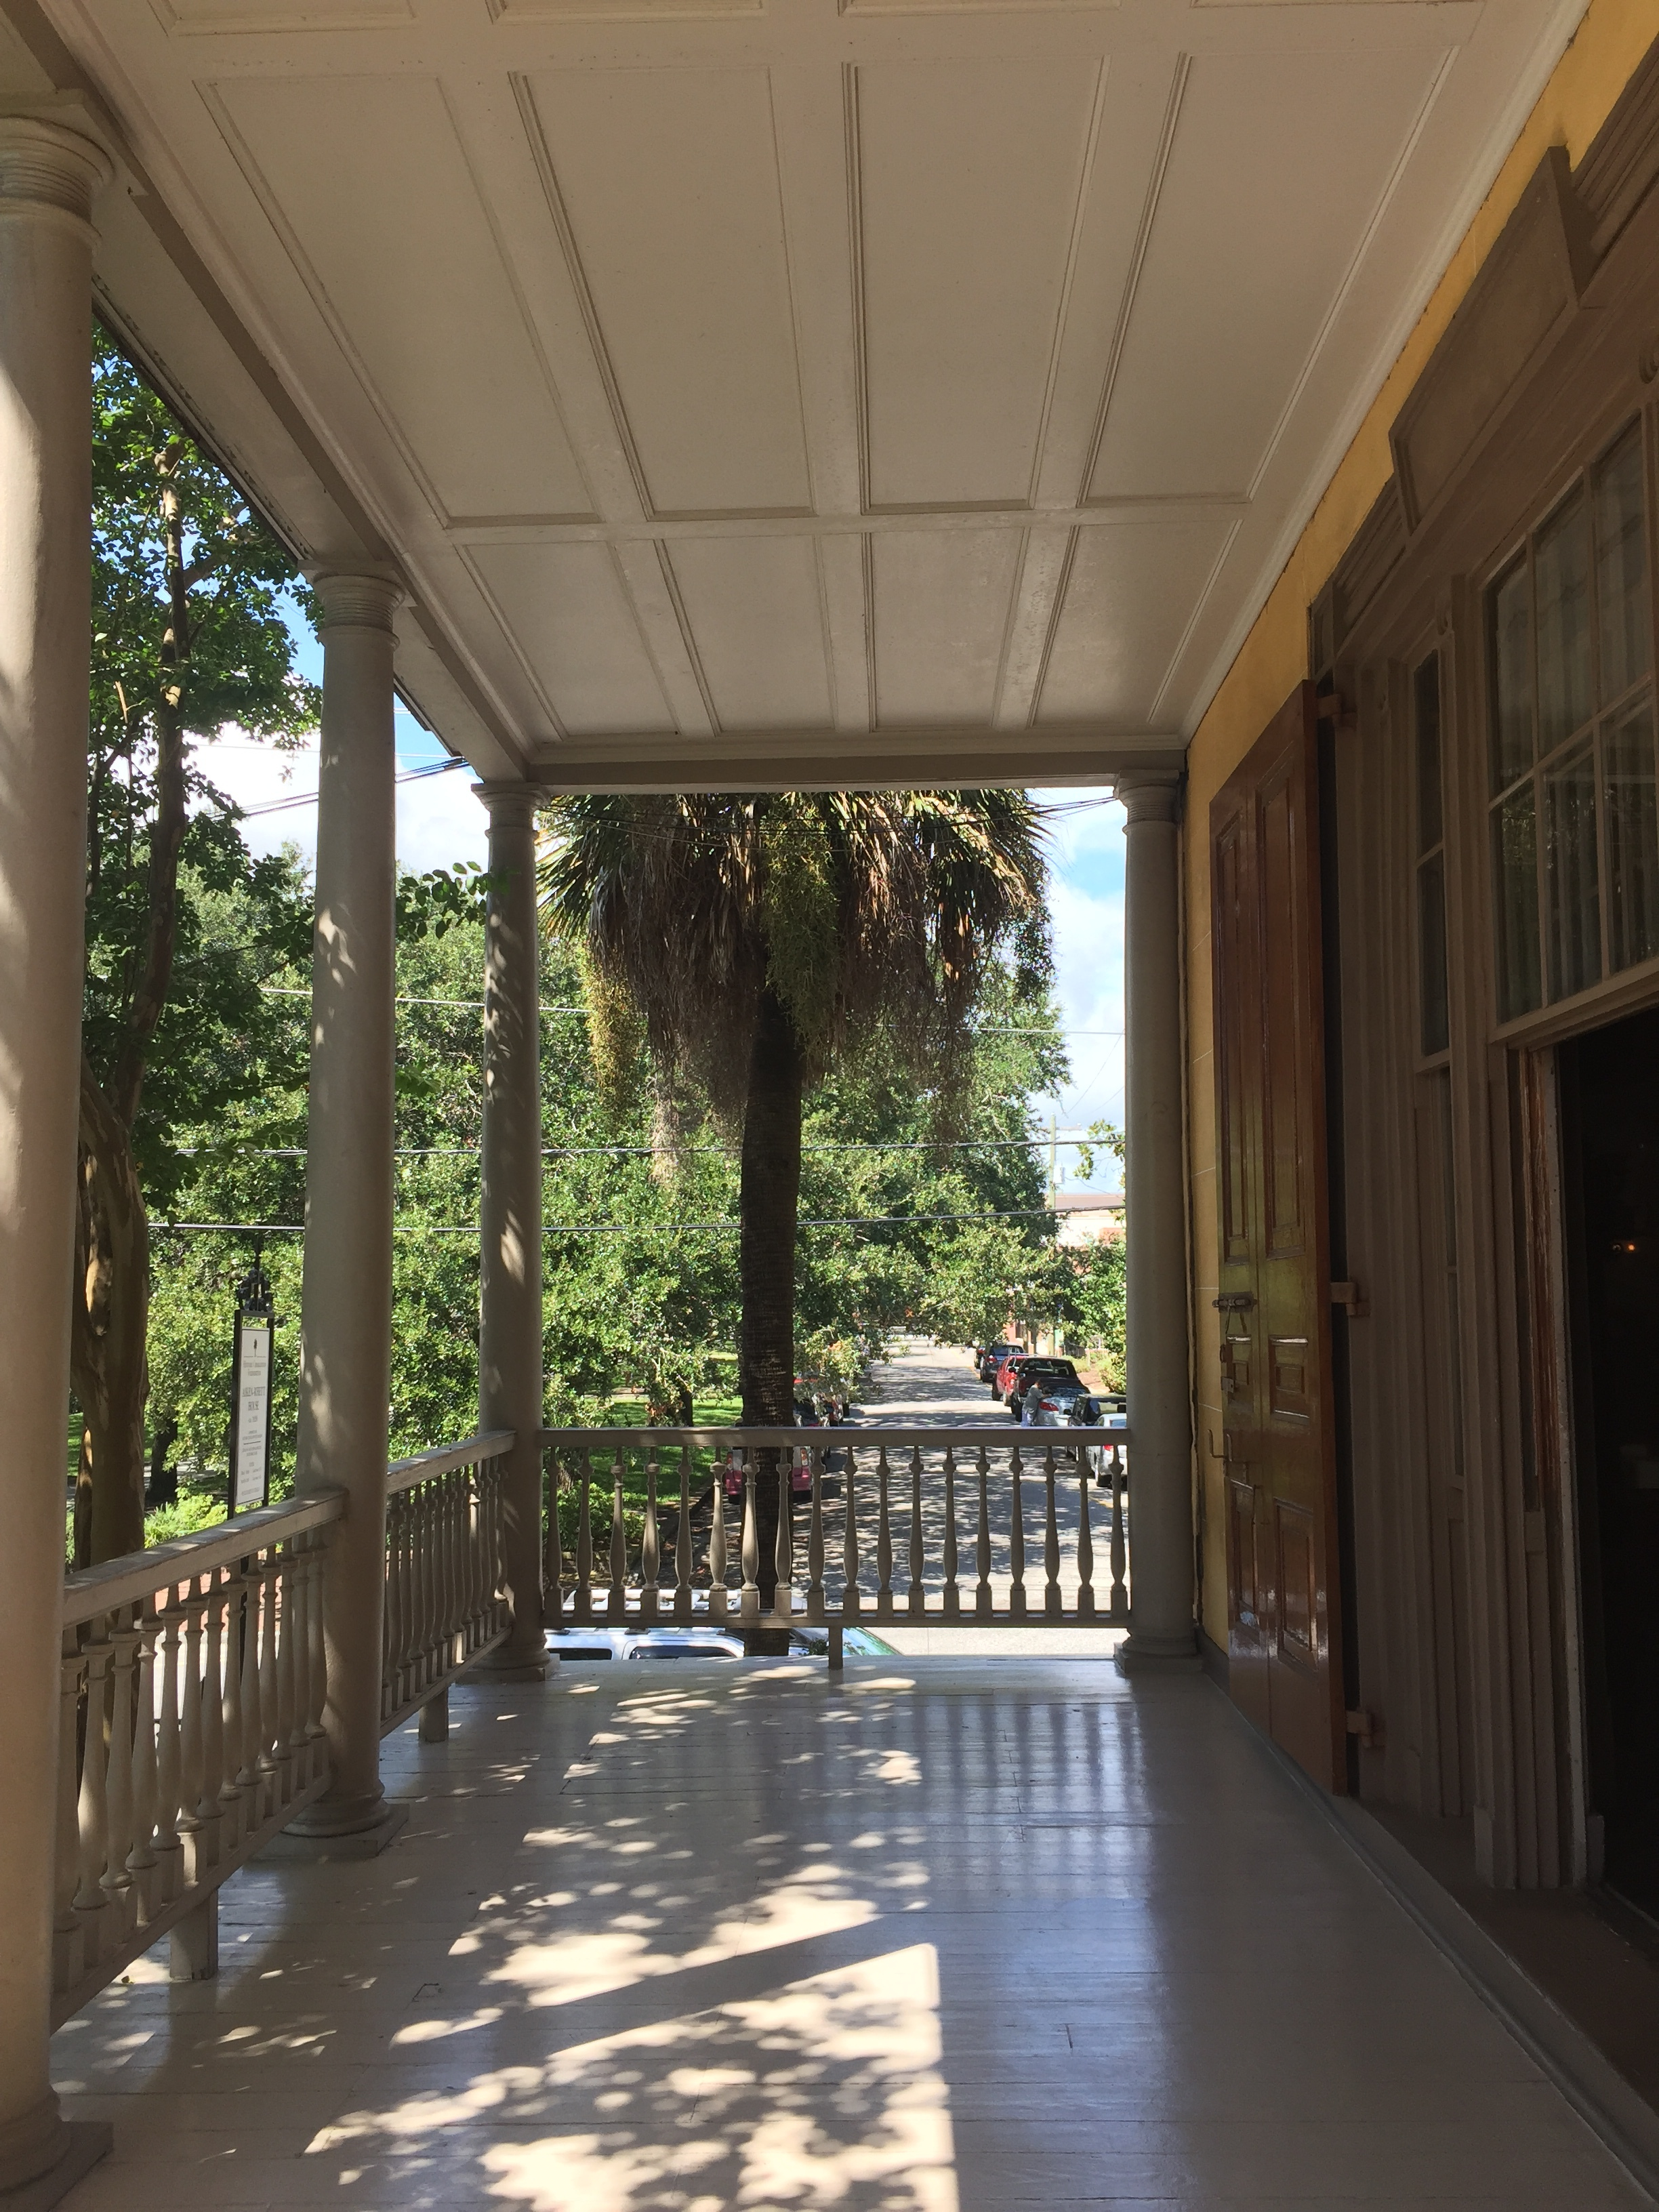 The columns of the porch are doric in character with turned baluster railings. The single hung windows transform into doorways that allow you to walk onto the verandahs. These windows are advantageously placed to allow for a cross breeze through the house and are extremely common in the South.